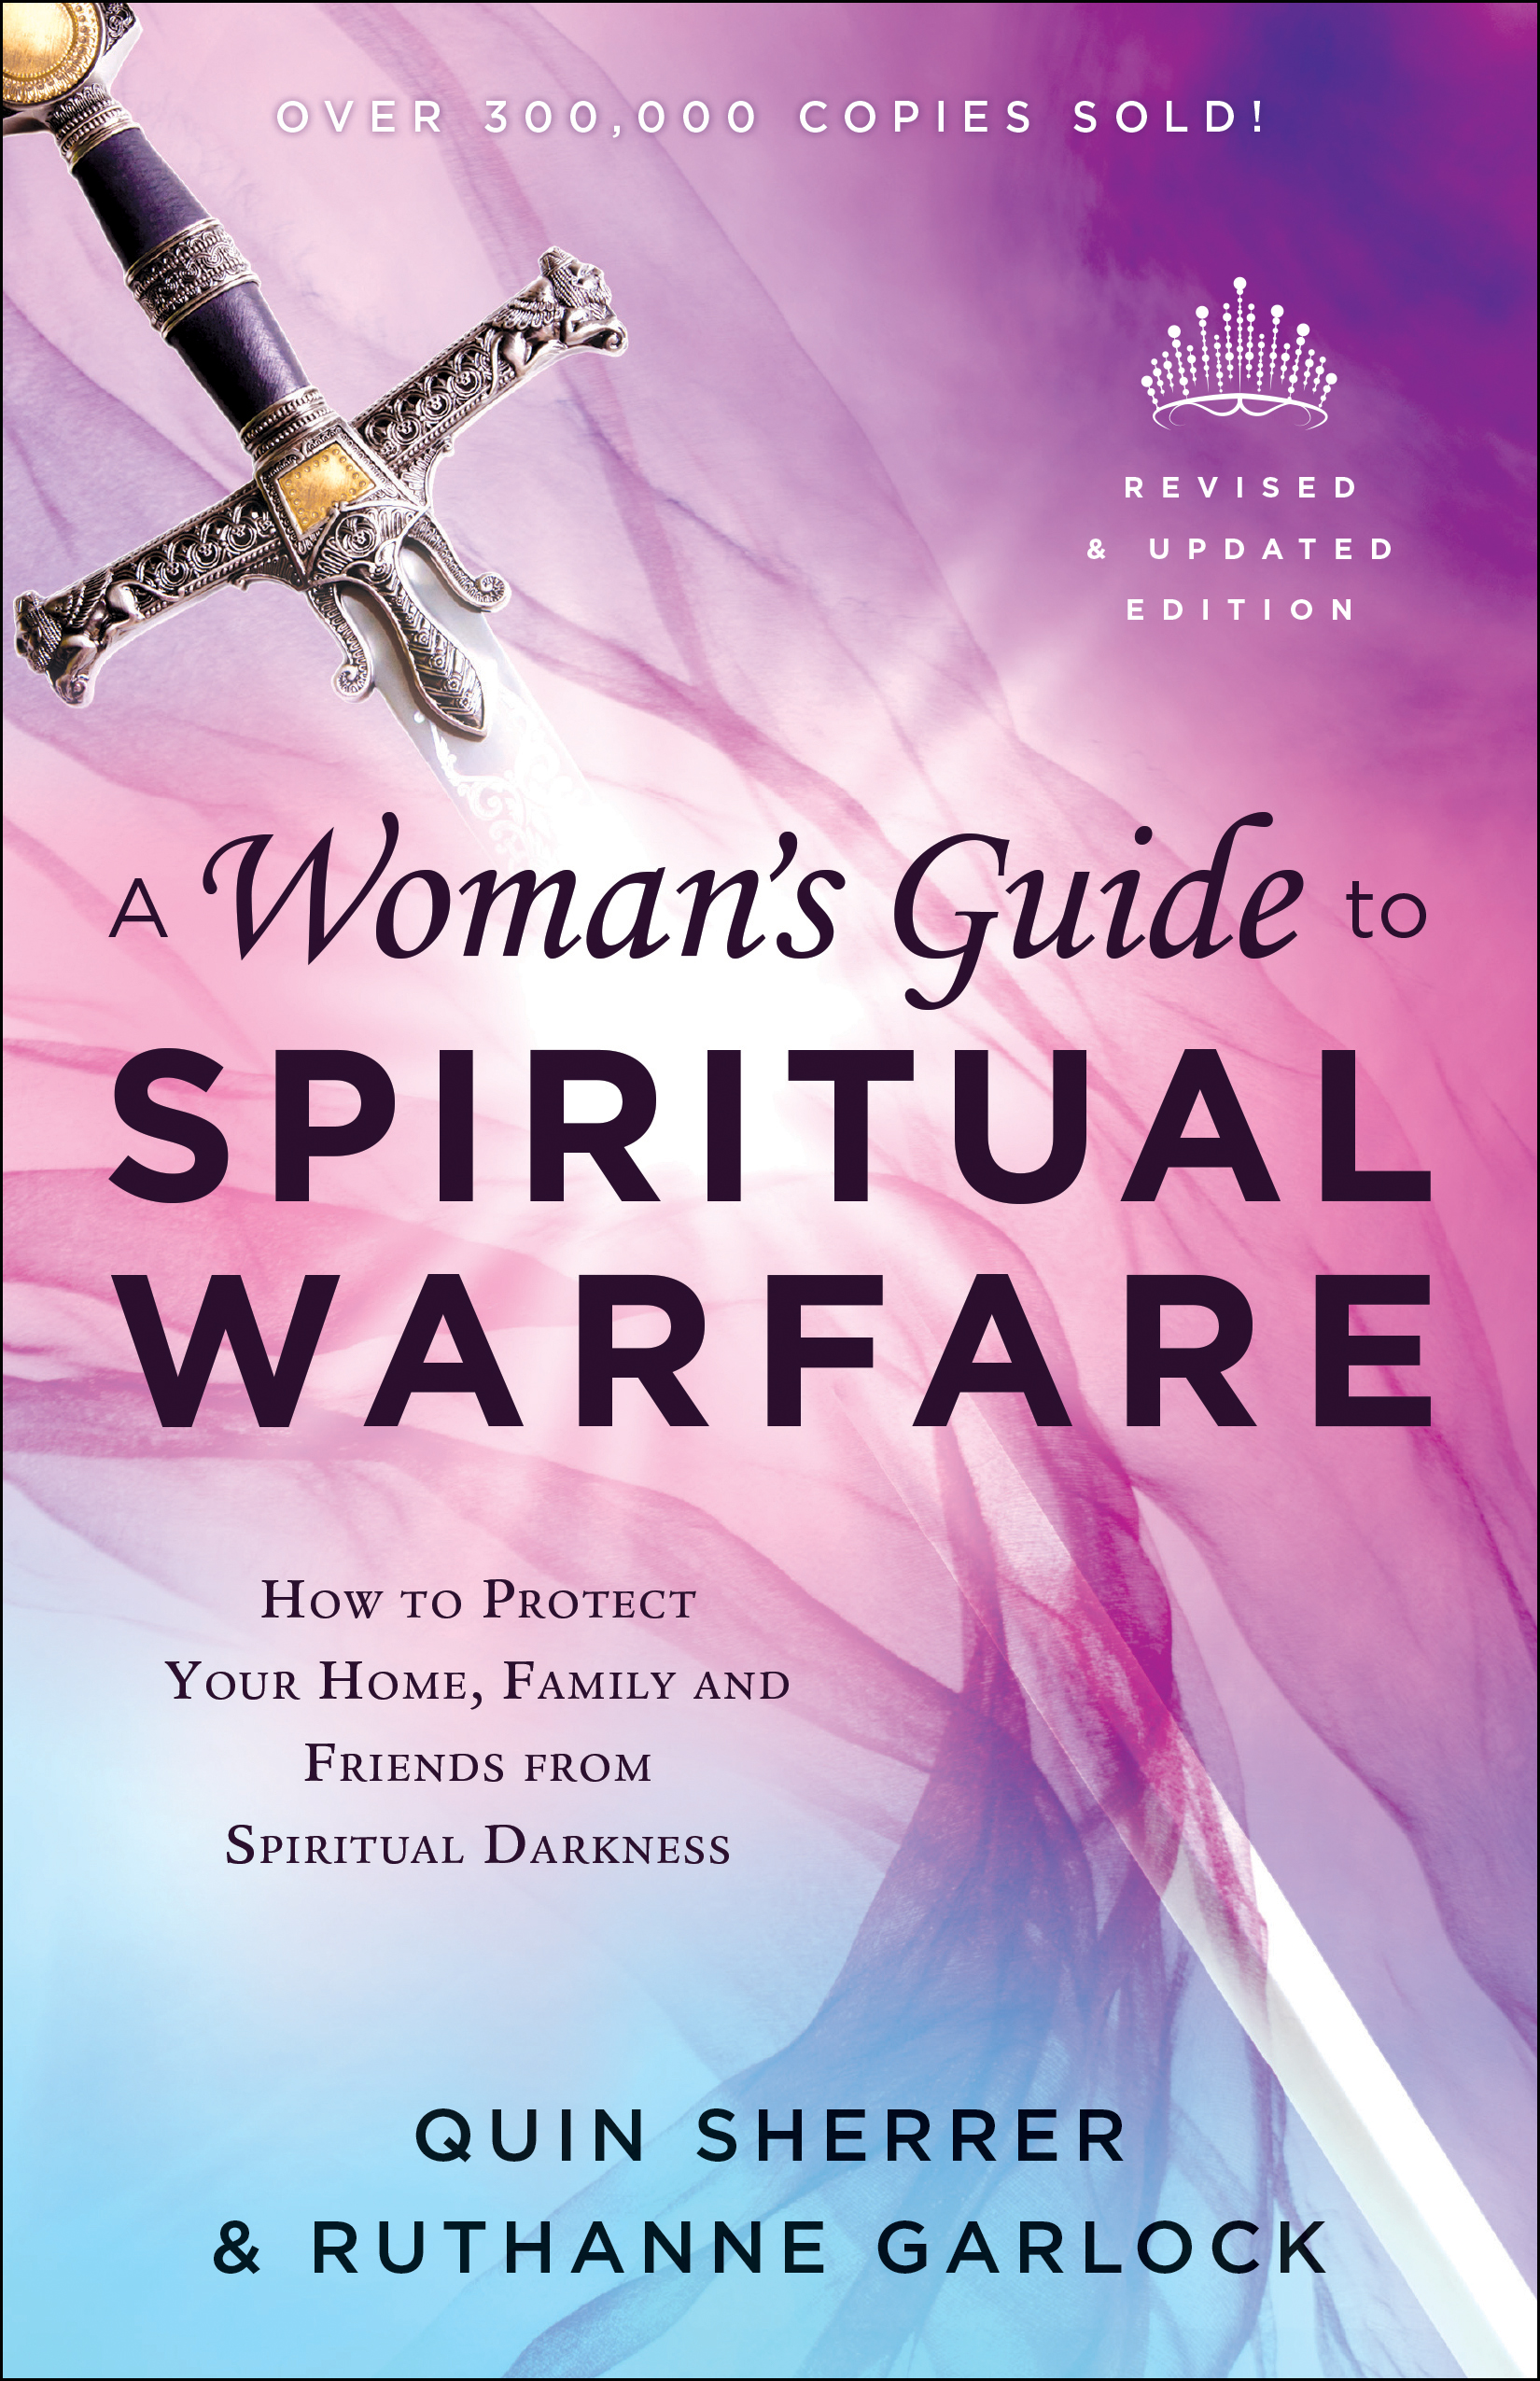 A Woman's Guide to Spiritual Warfare, Revised and Updated